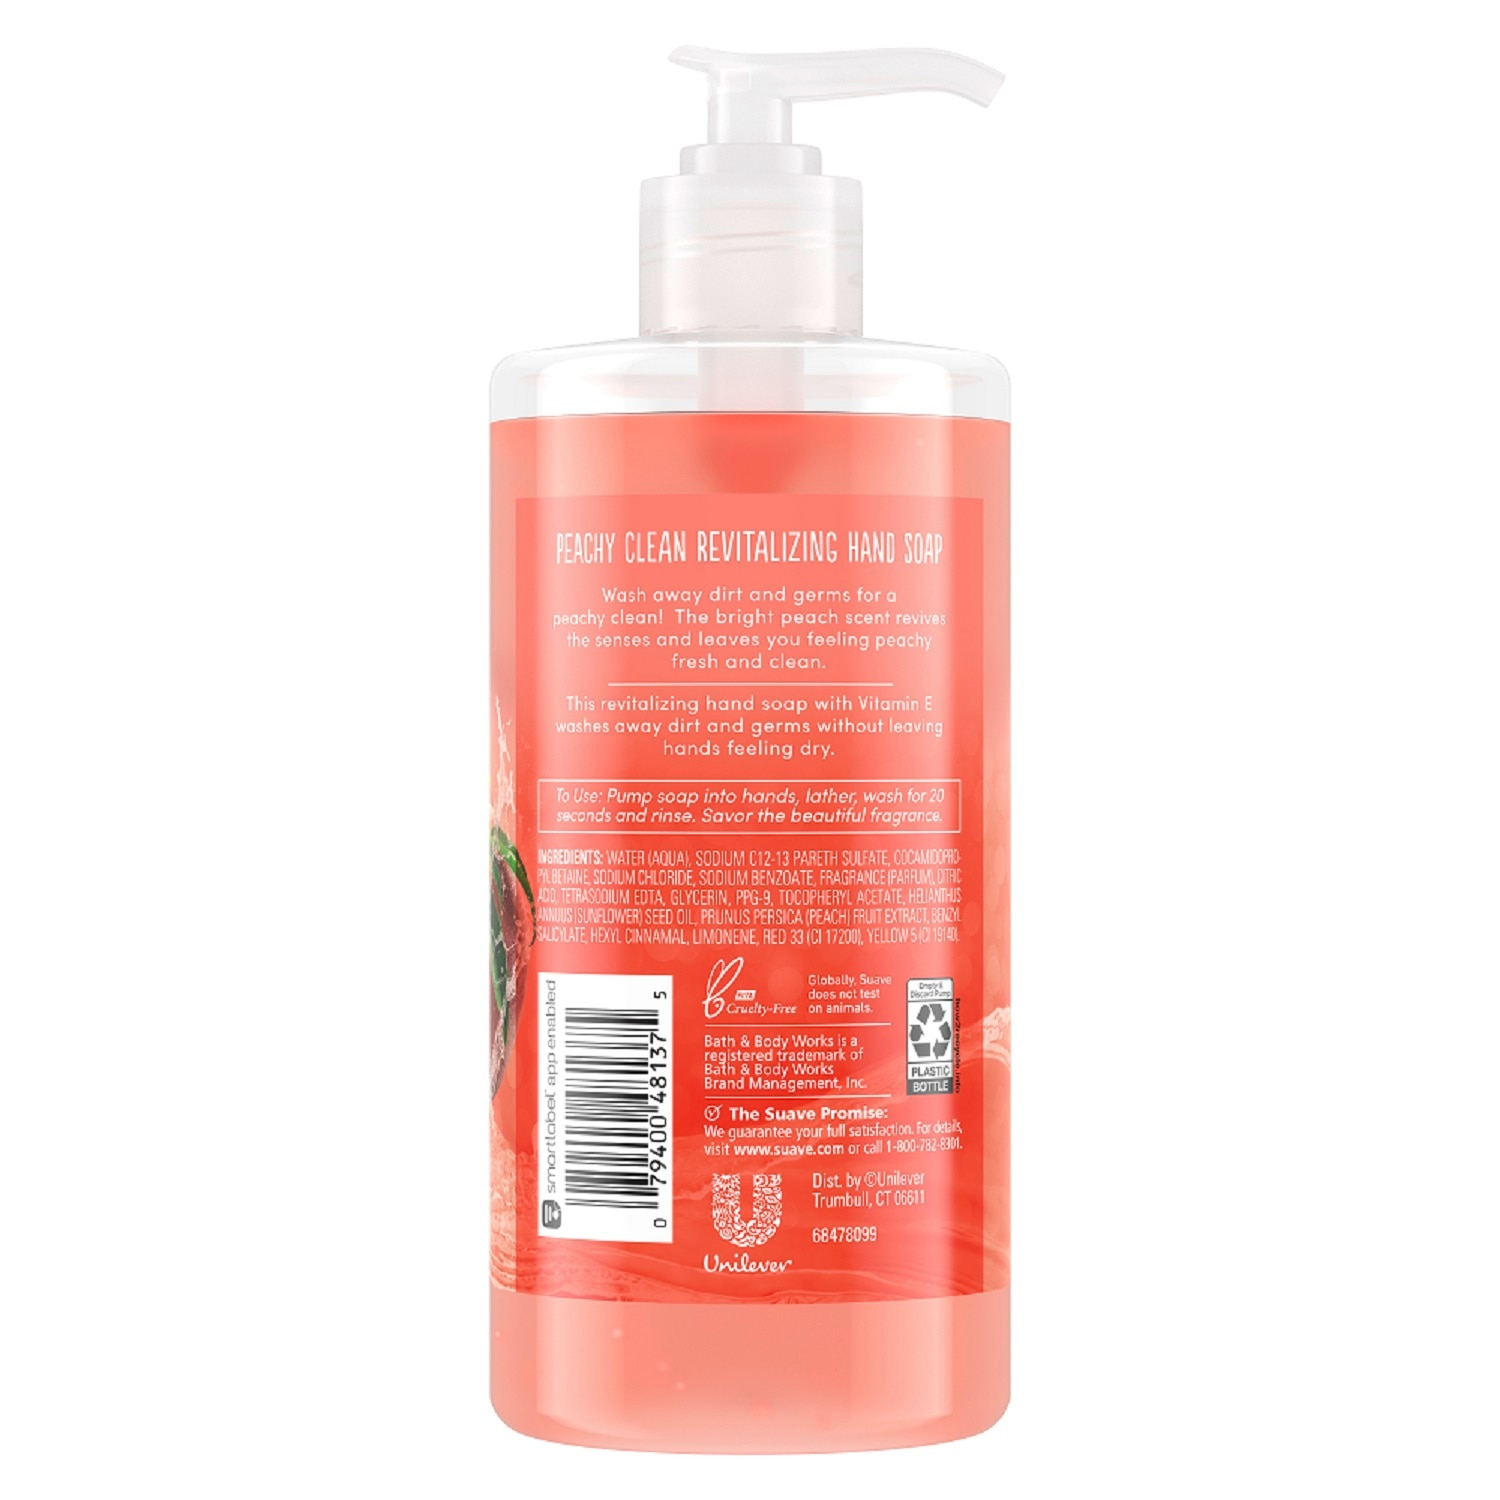 SUAVEPeachy Clean Hand Wash 400ML 2x Buy 1 Take 1,Hand Soap/Sanitizers-